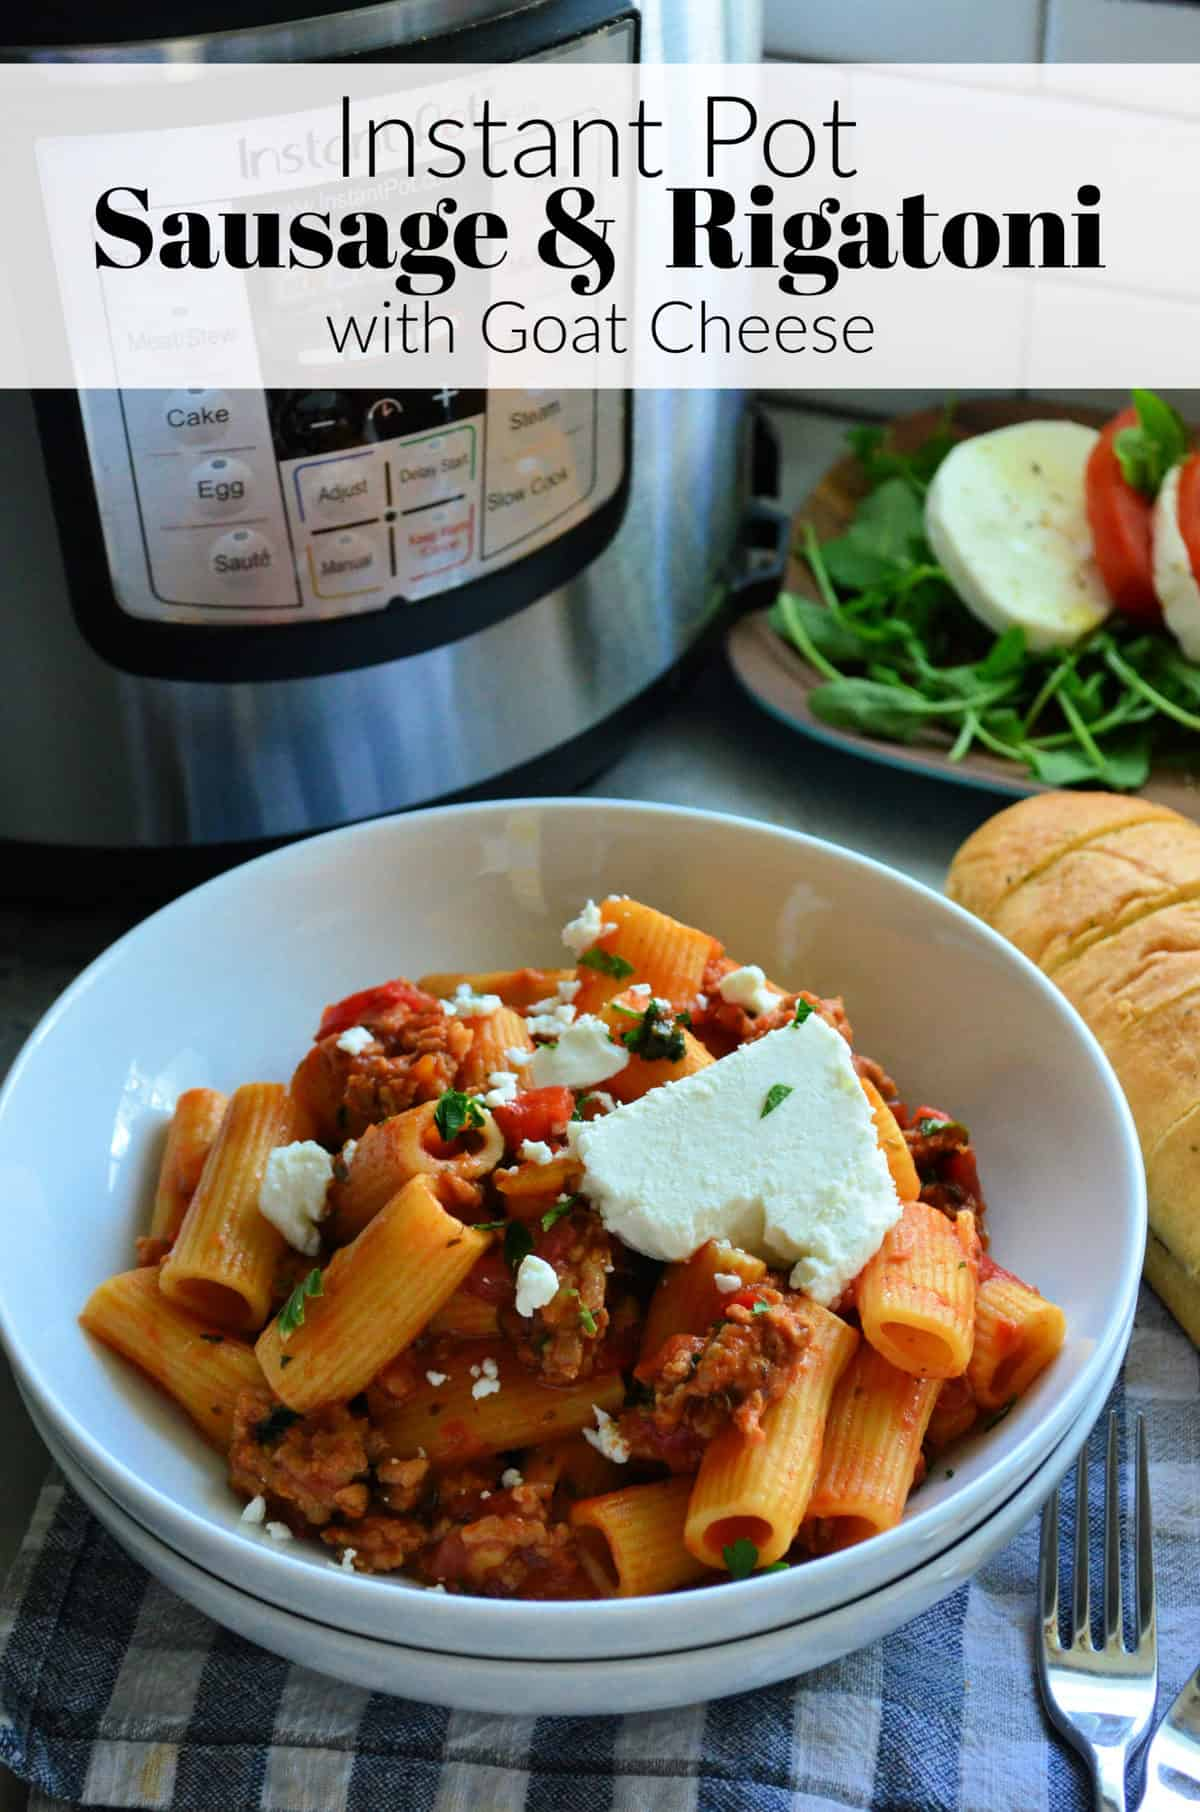 Instant Pot Sausage & Rigatoni with Goat Cheese Easy Dinner Recipe